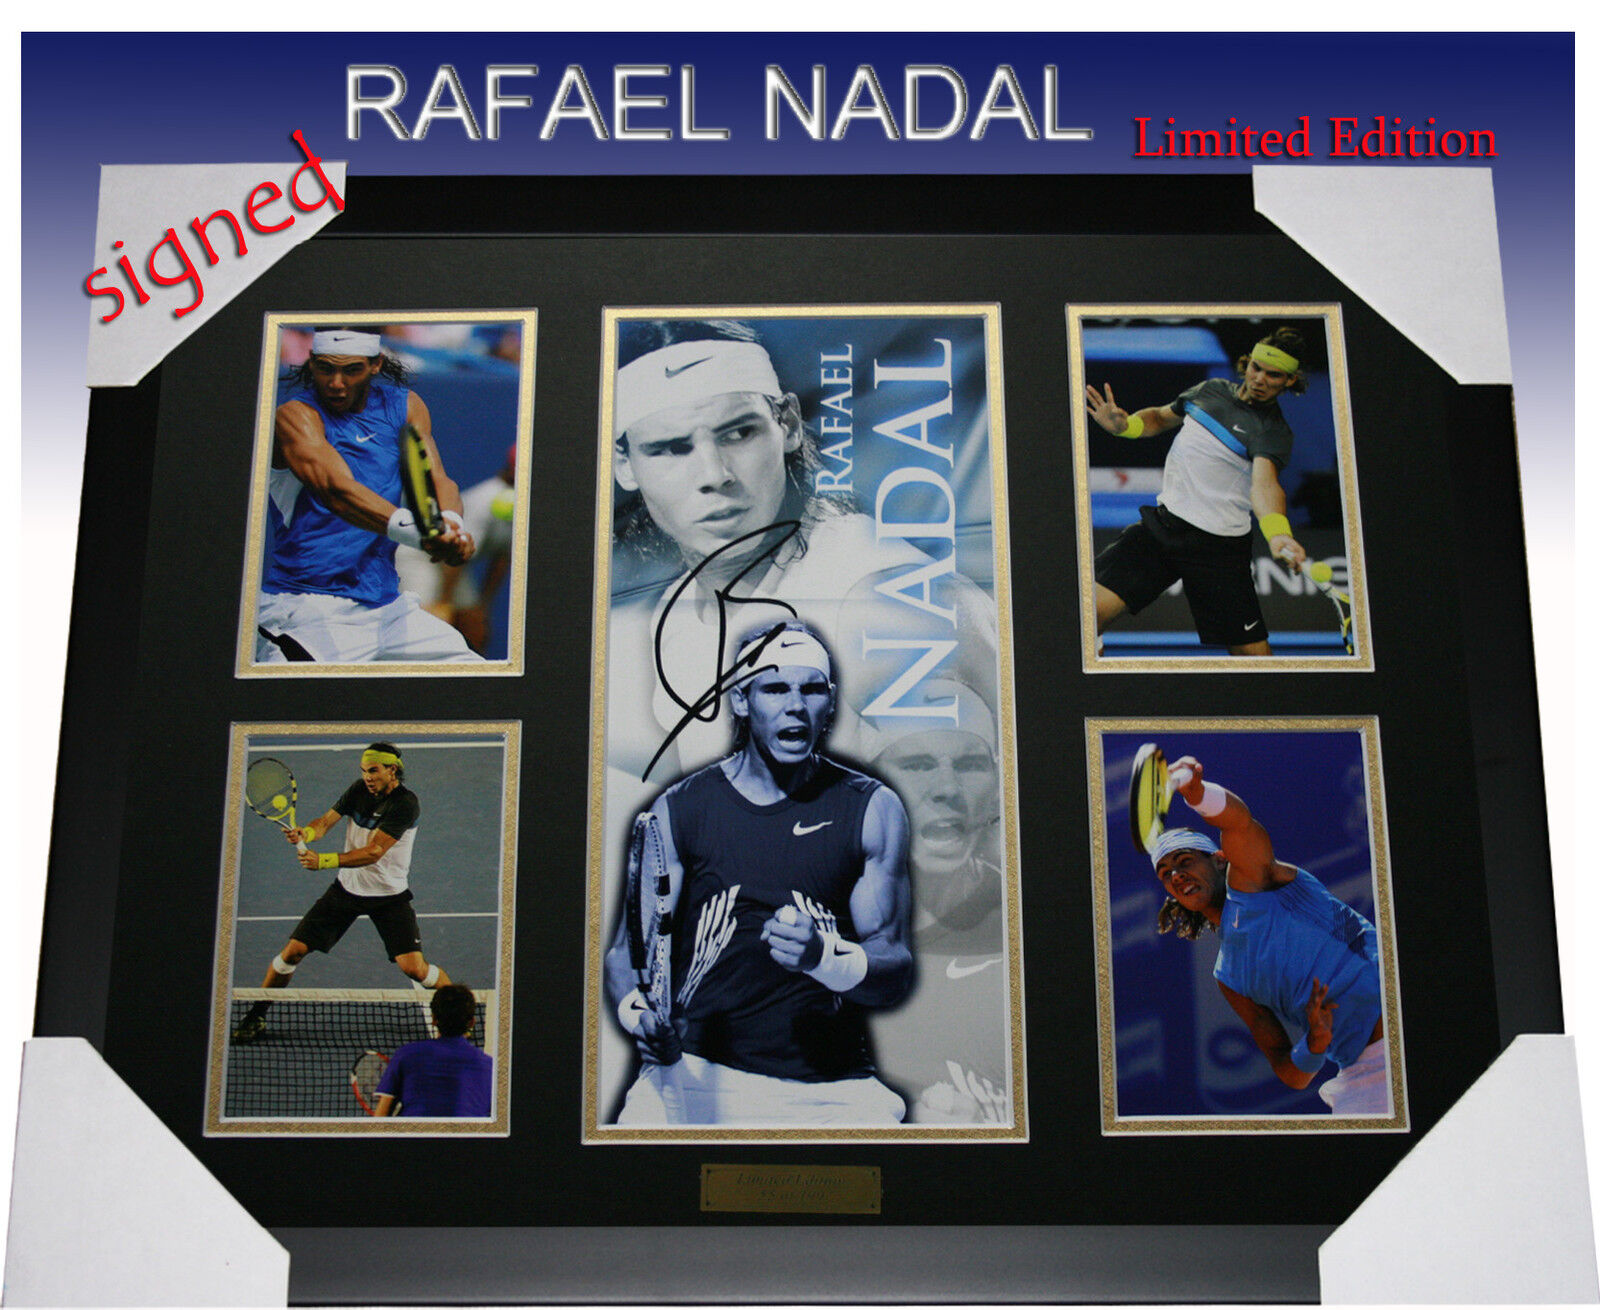 RAFAEL NADAL TENNIS MEMORABILIA SIGNED LTD EDITION 499